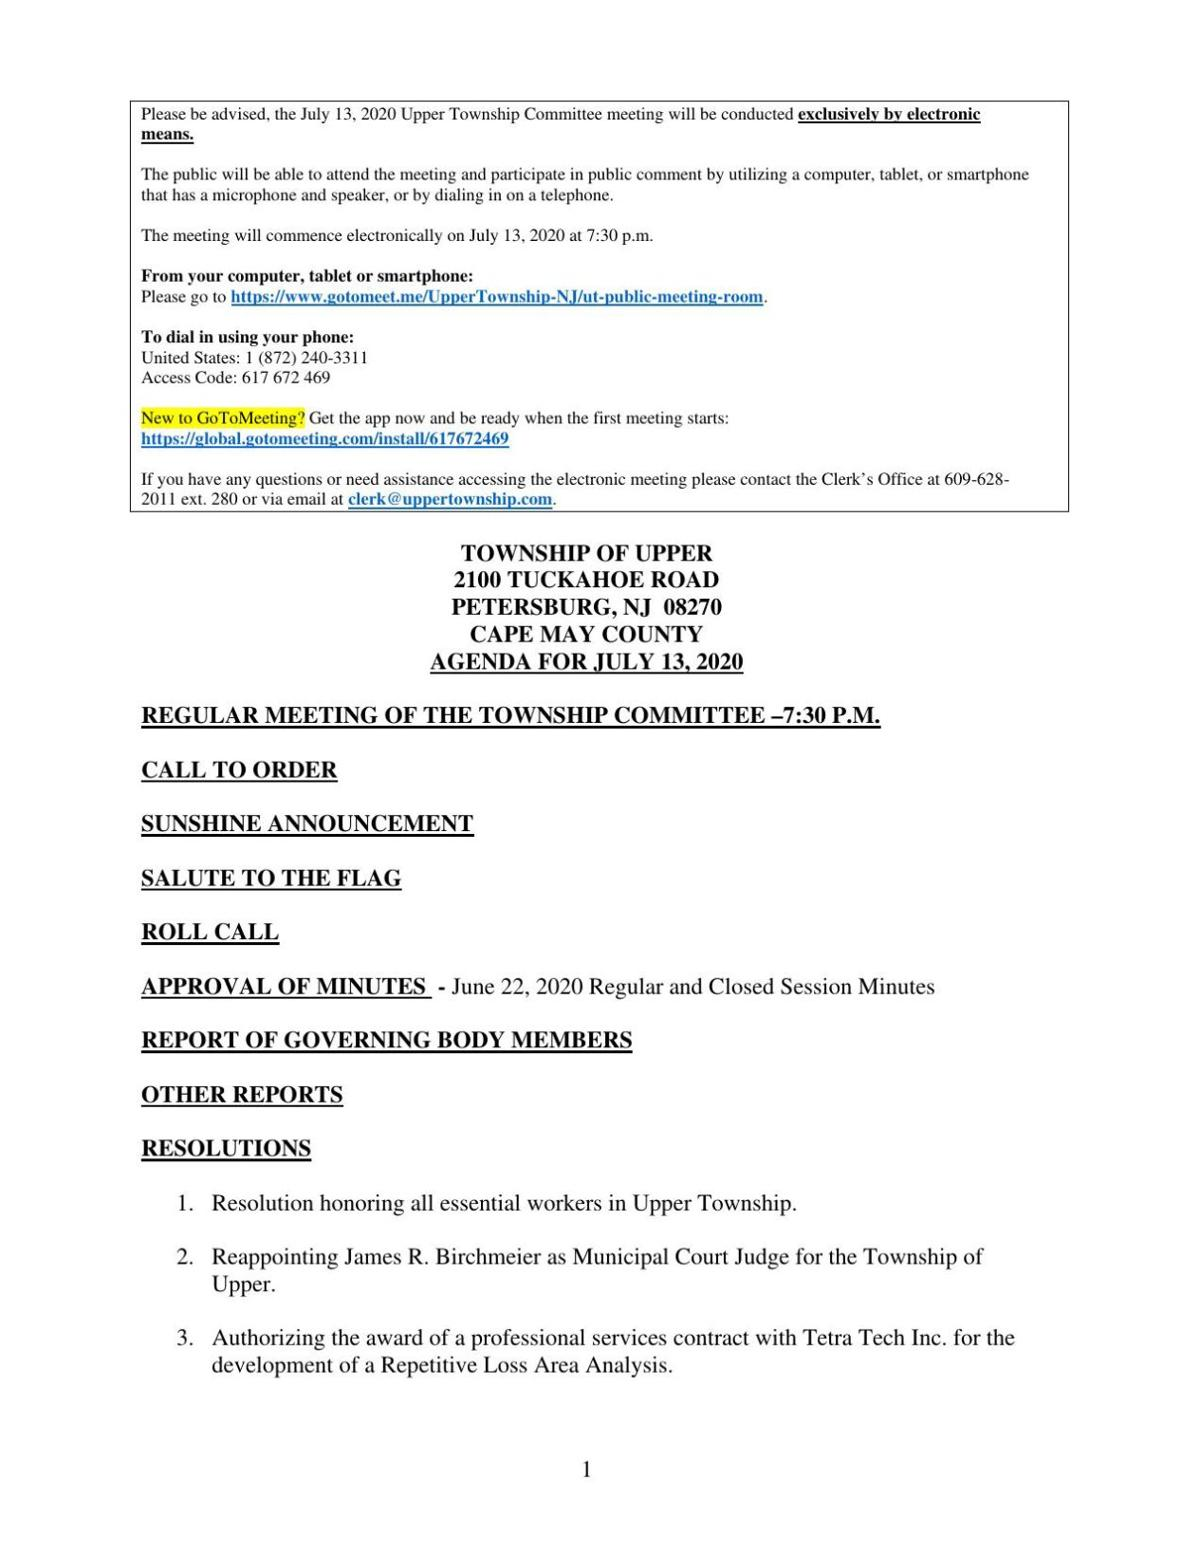 Upper Township Committee Meeting Agenda July 13, 2020